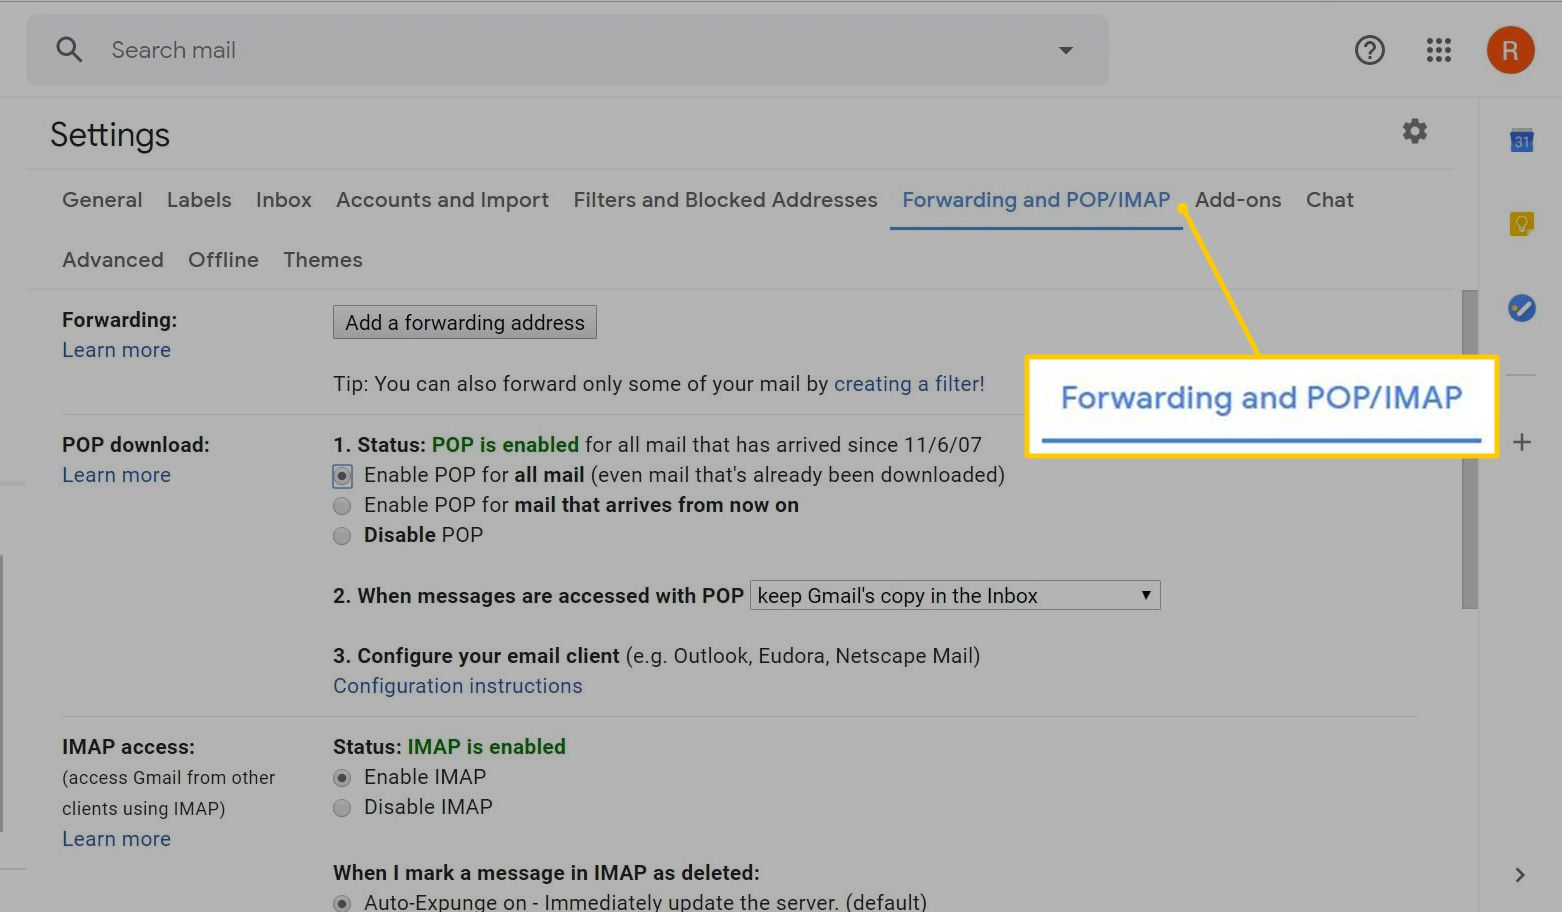 How to Back Up and Save Gmail Messages Offline